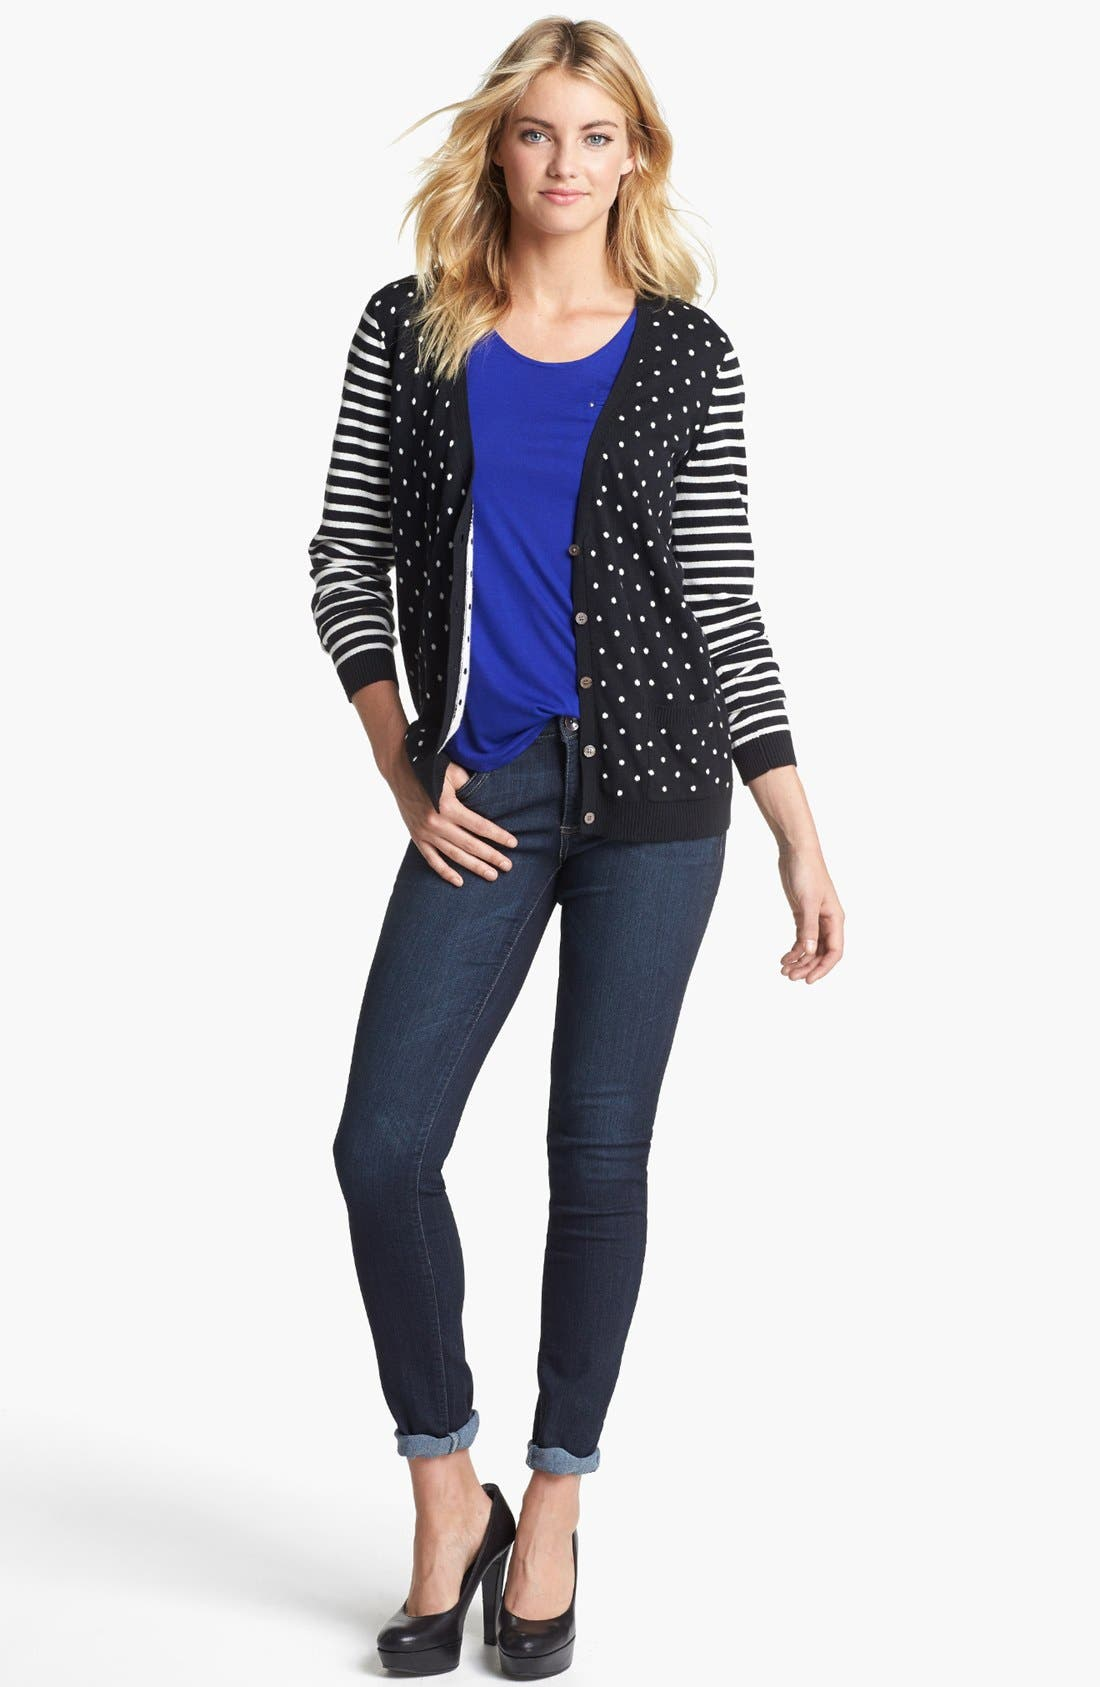 Alternate Image 1 Selected - Two by Vince Camuto Dot & Stripe Cardigan